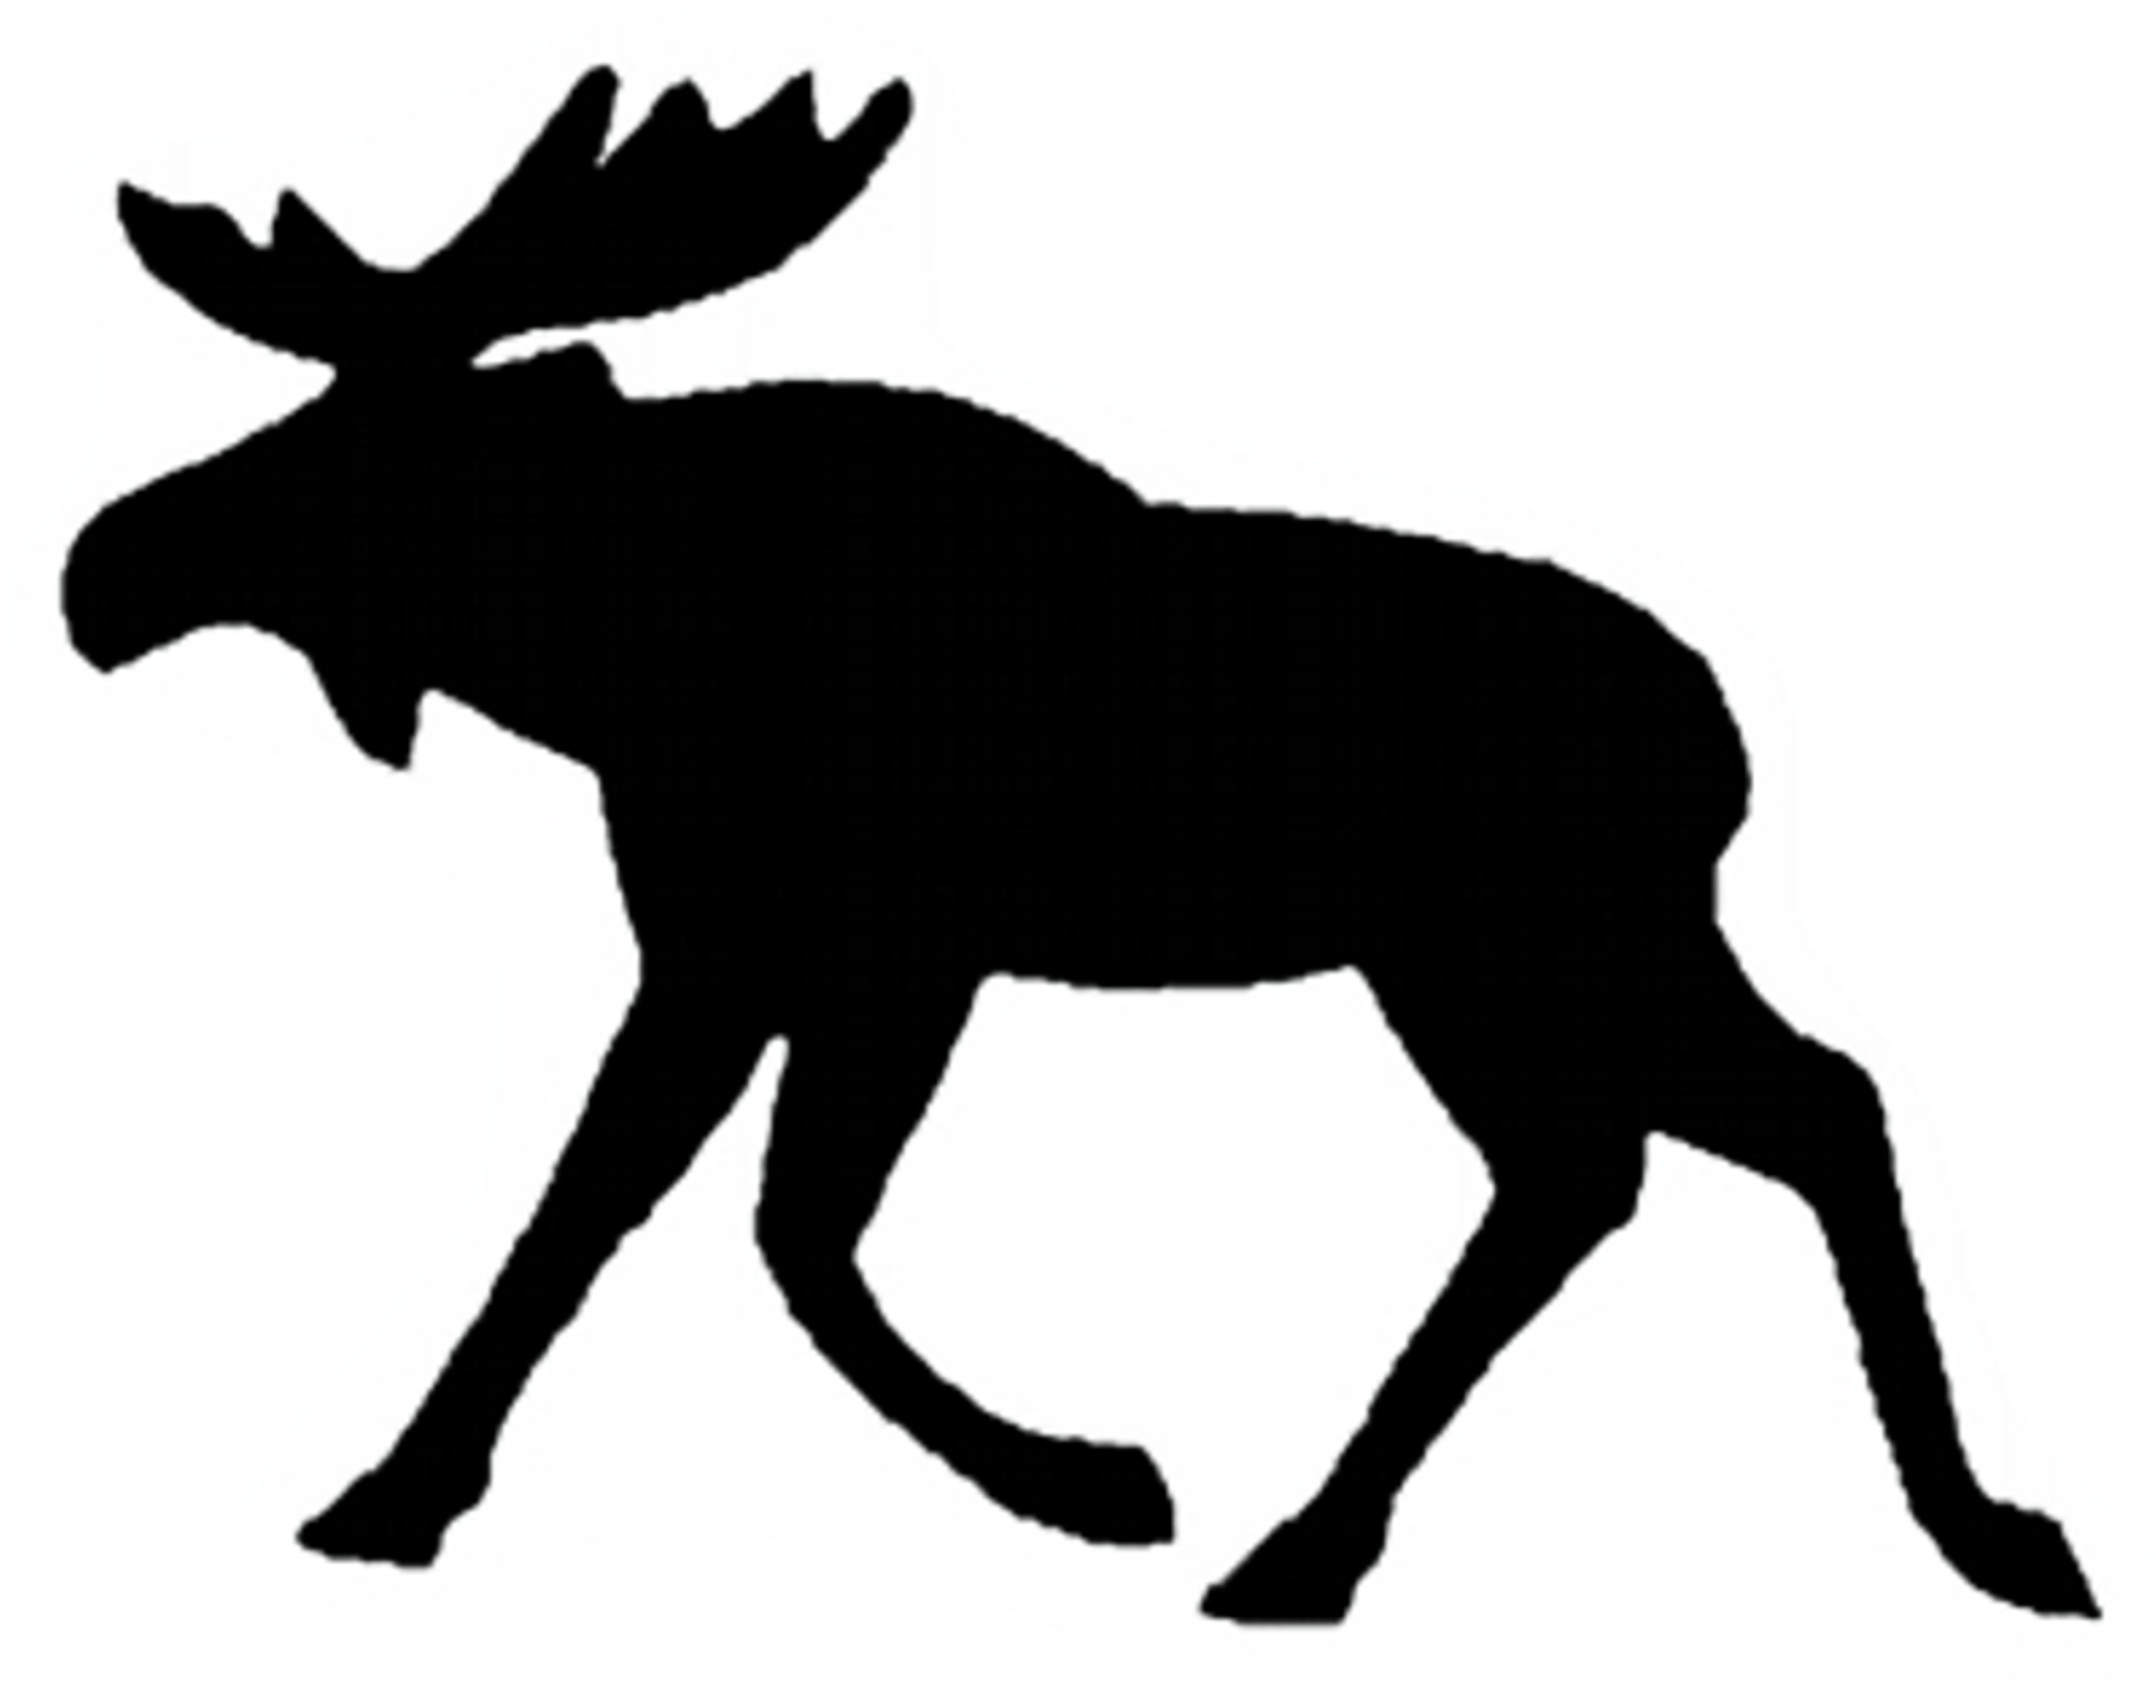 Sticker moose dimension 60 x 80 mm – Bild 1